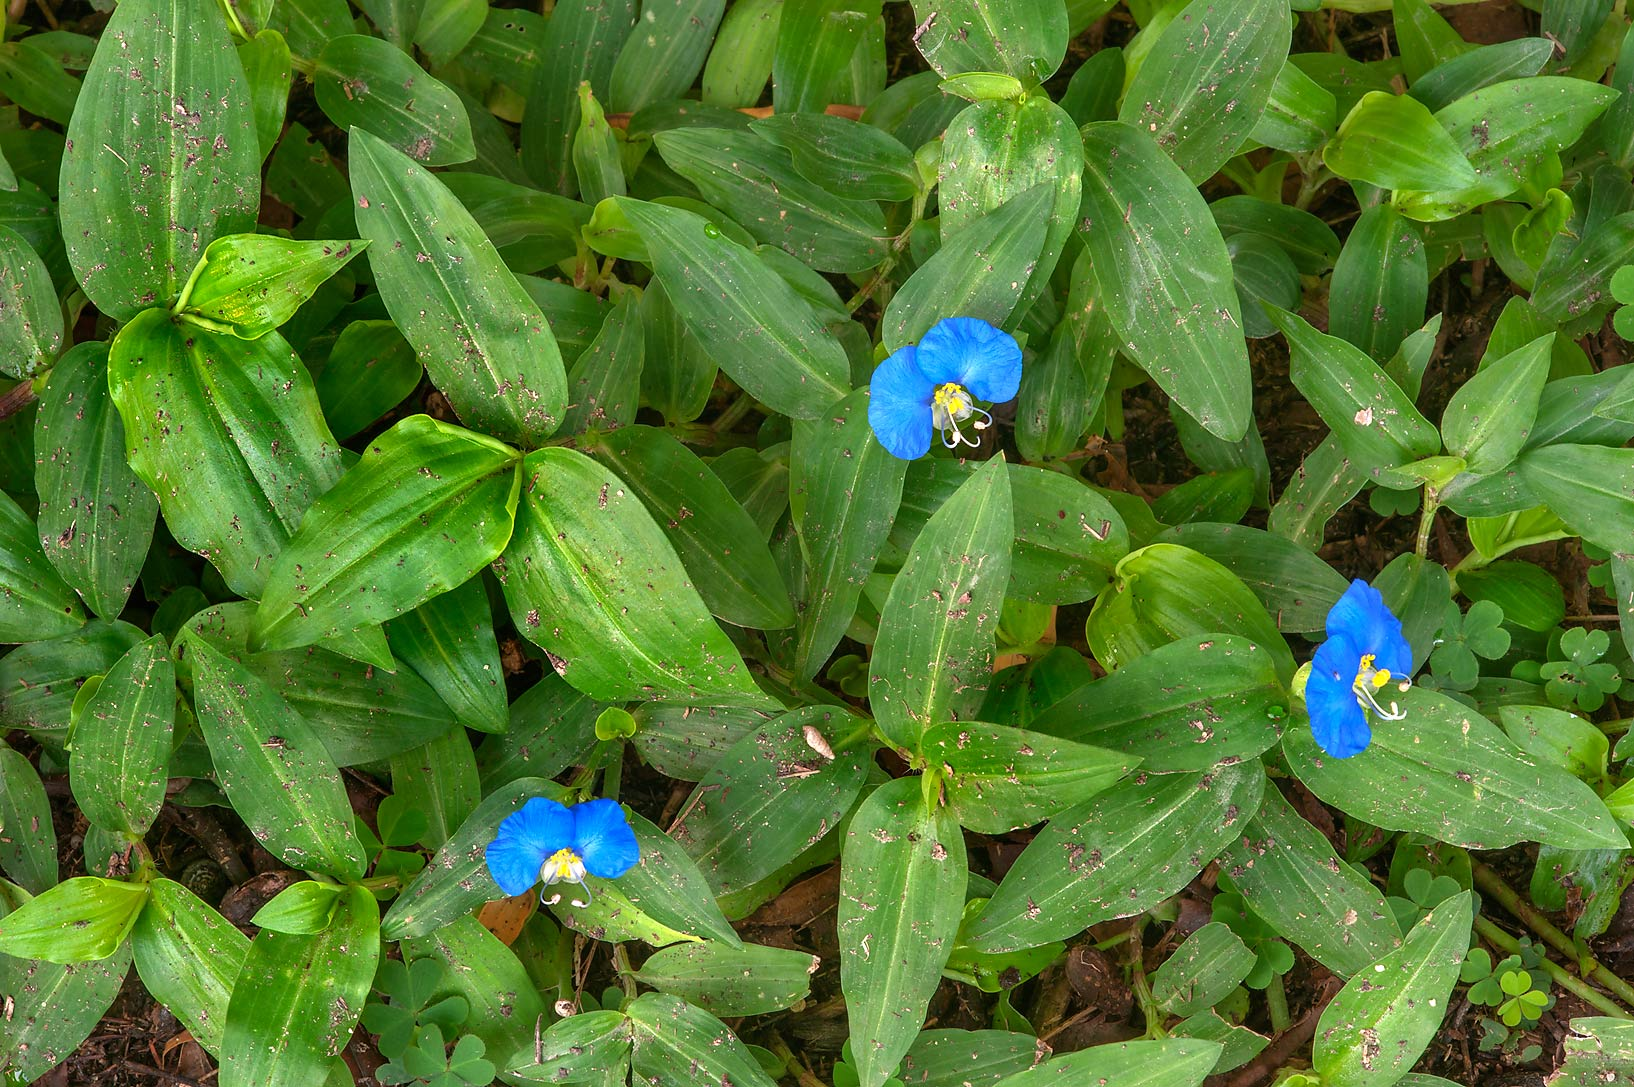 Flowers of Benghal dayflower (tropical spiderwort...Onaiza area near West Bay. Doha, Qatar